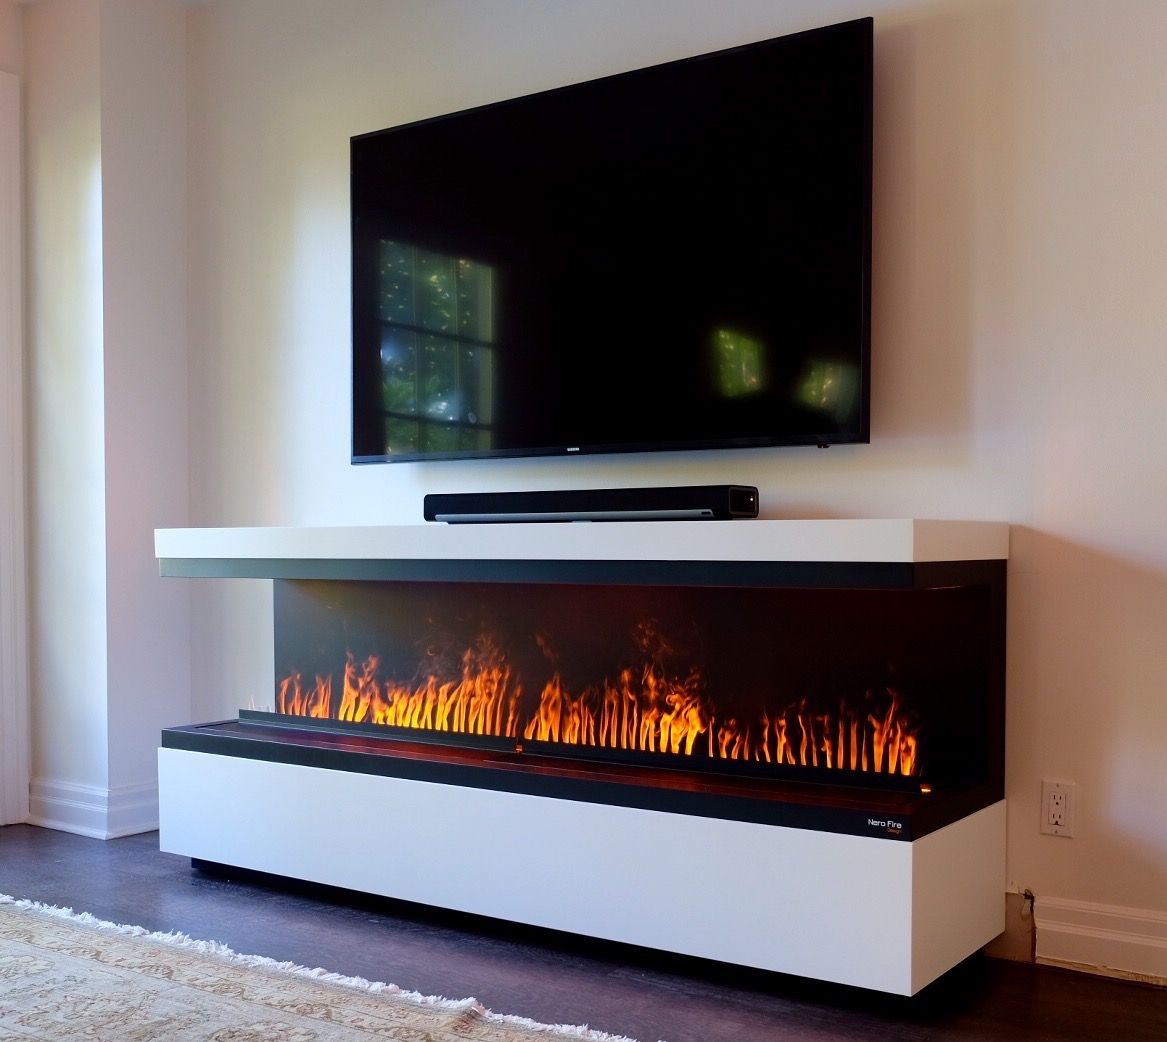 Fireplace with TV above. Water Vapor Technology Opti